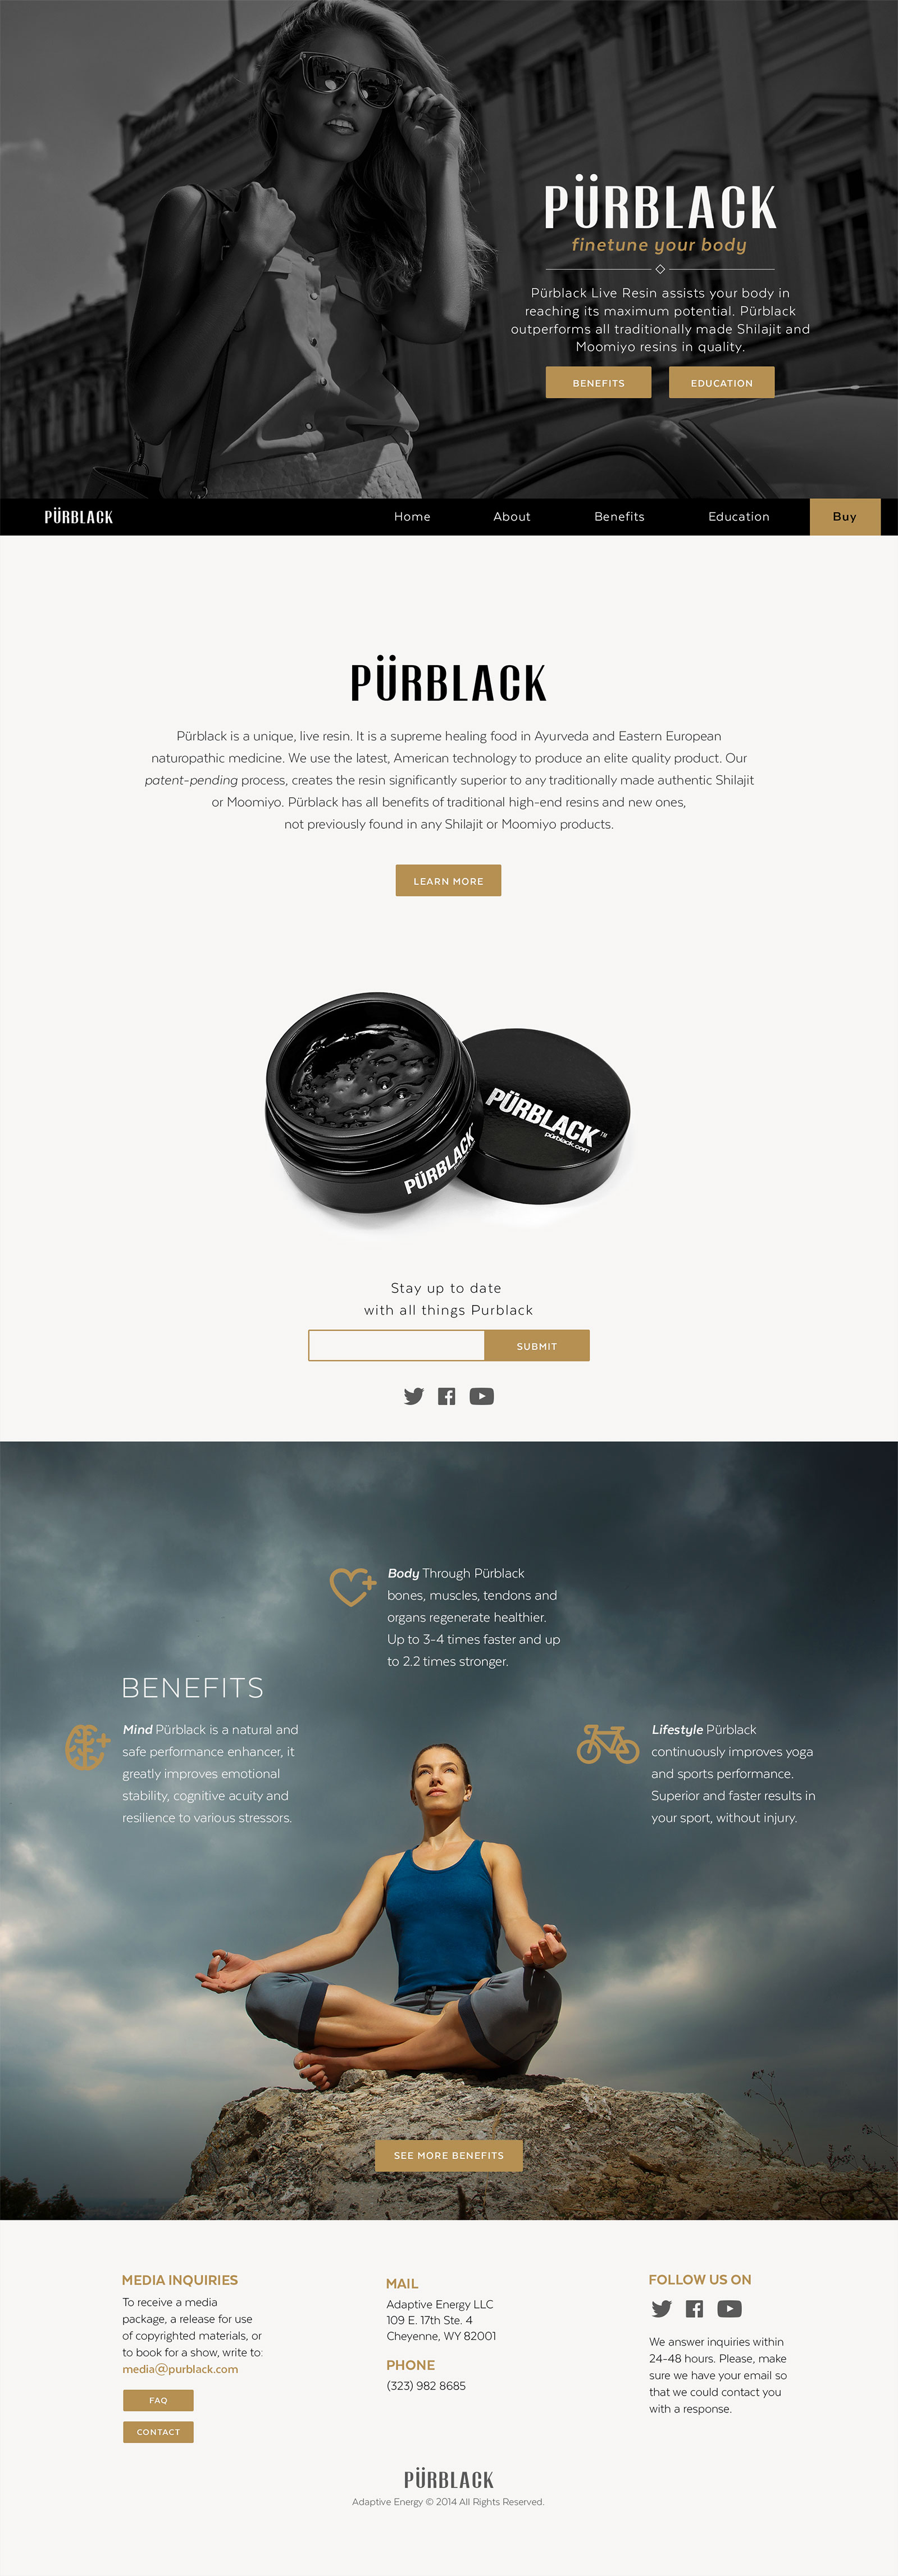 purblack-website